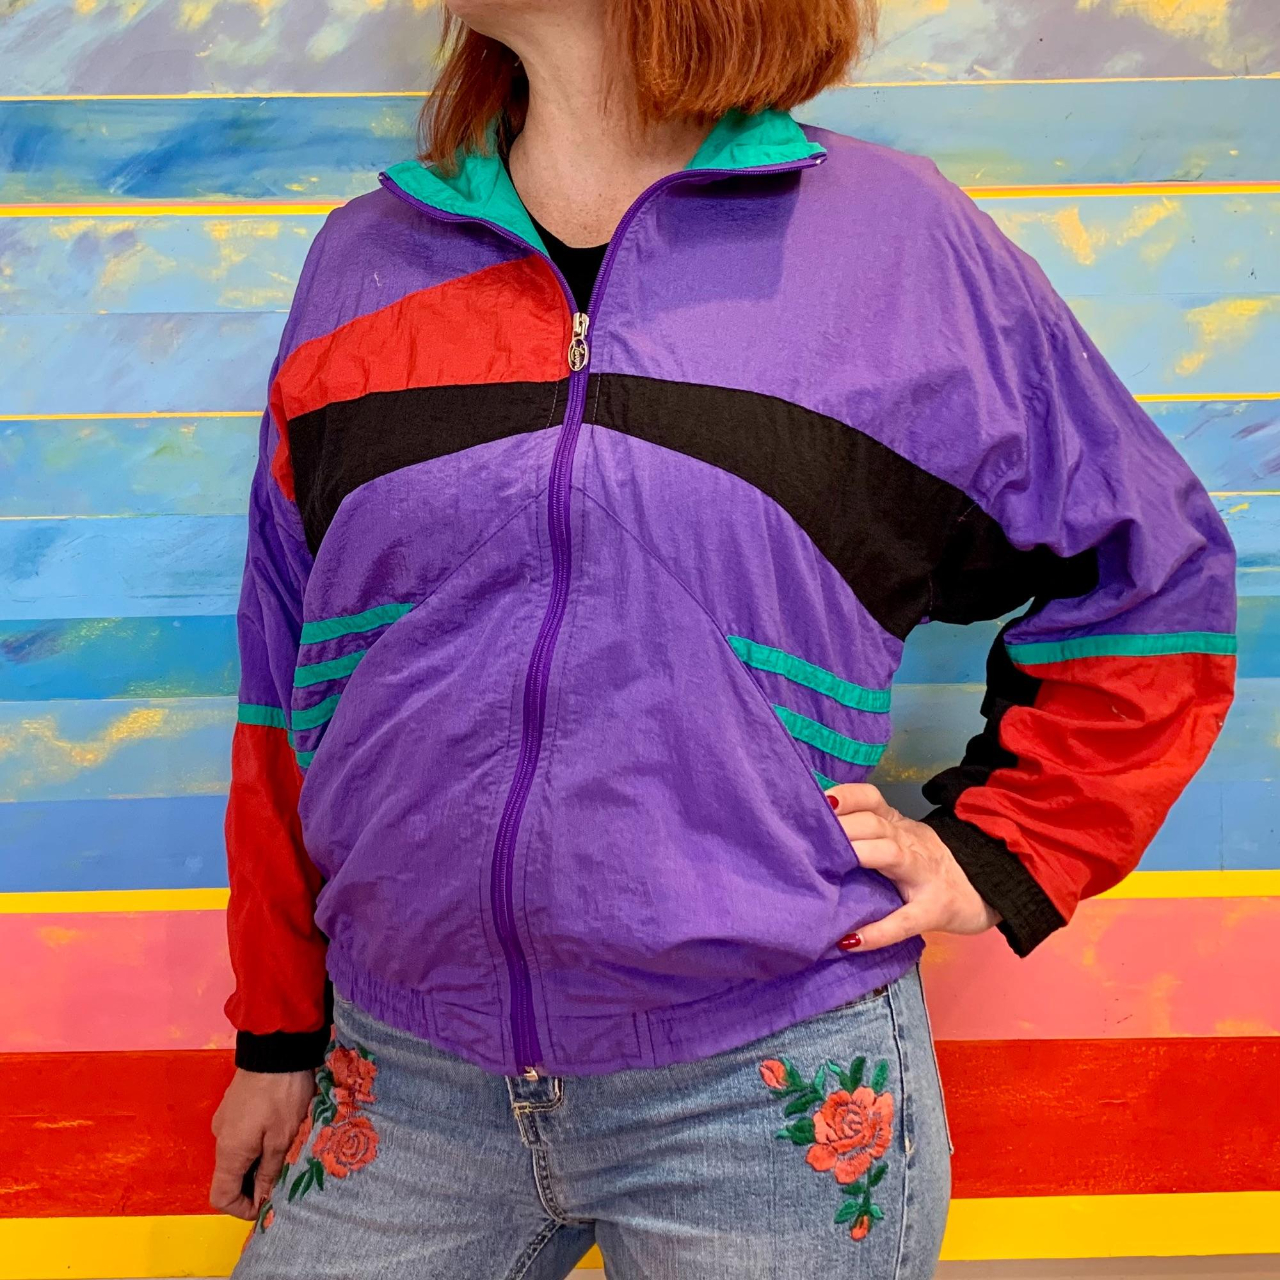 Product Image 1 - ✨Vintage 80s-90s Abstract Design Windbreaker✨  ❌🛍️PLEASE